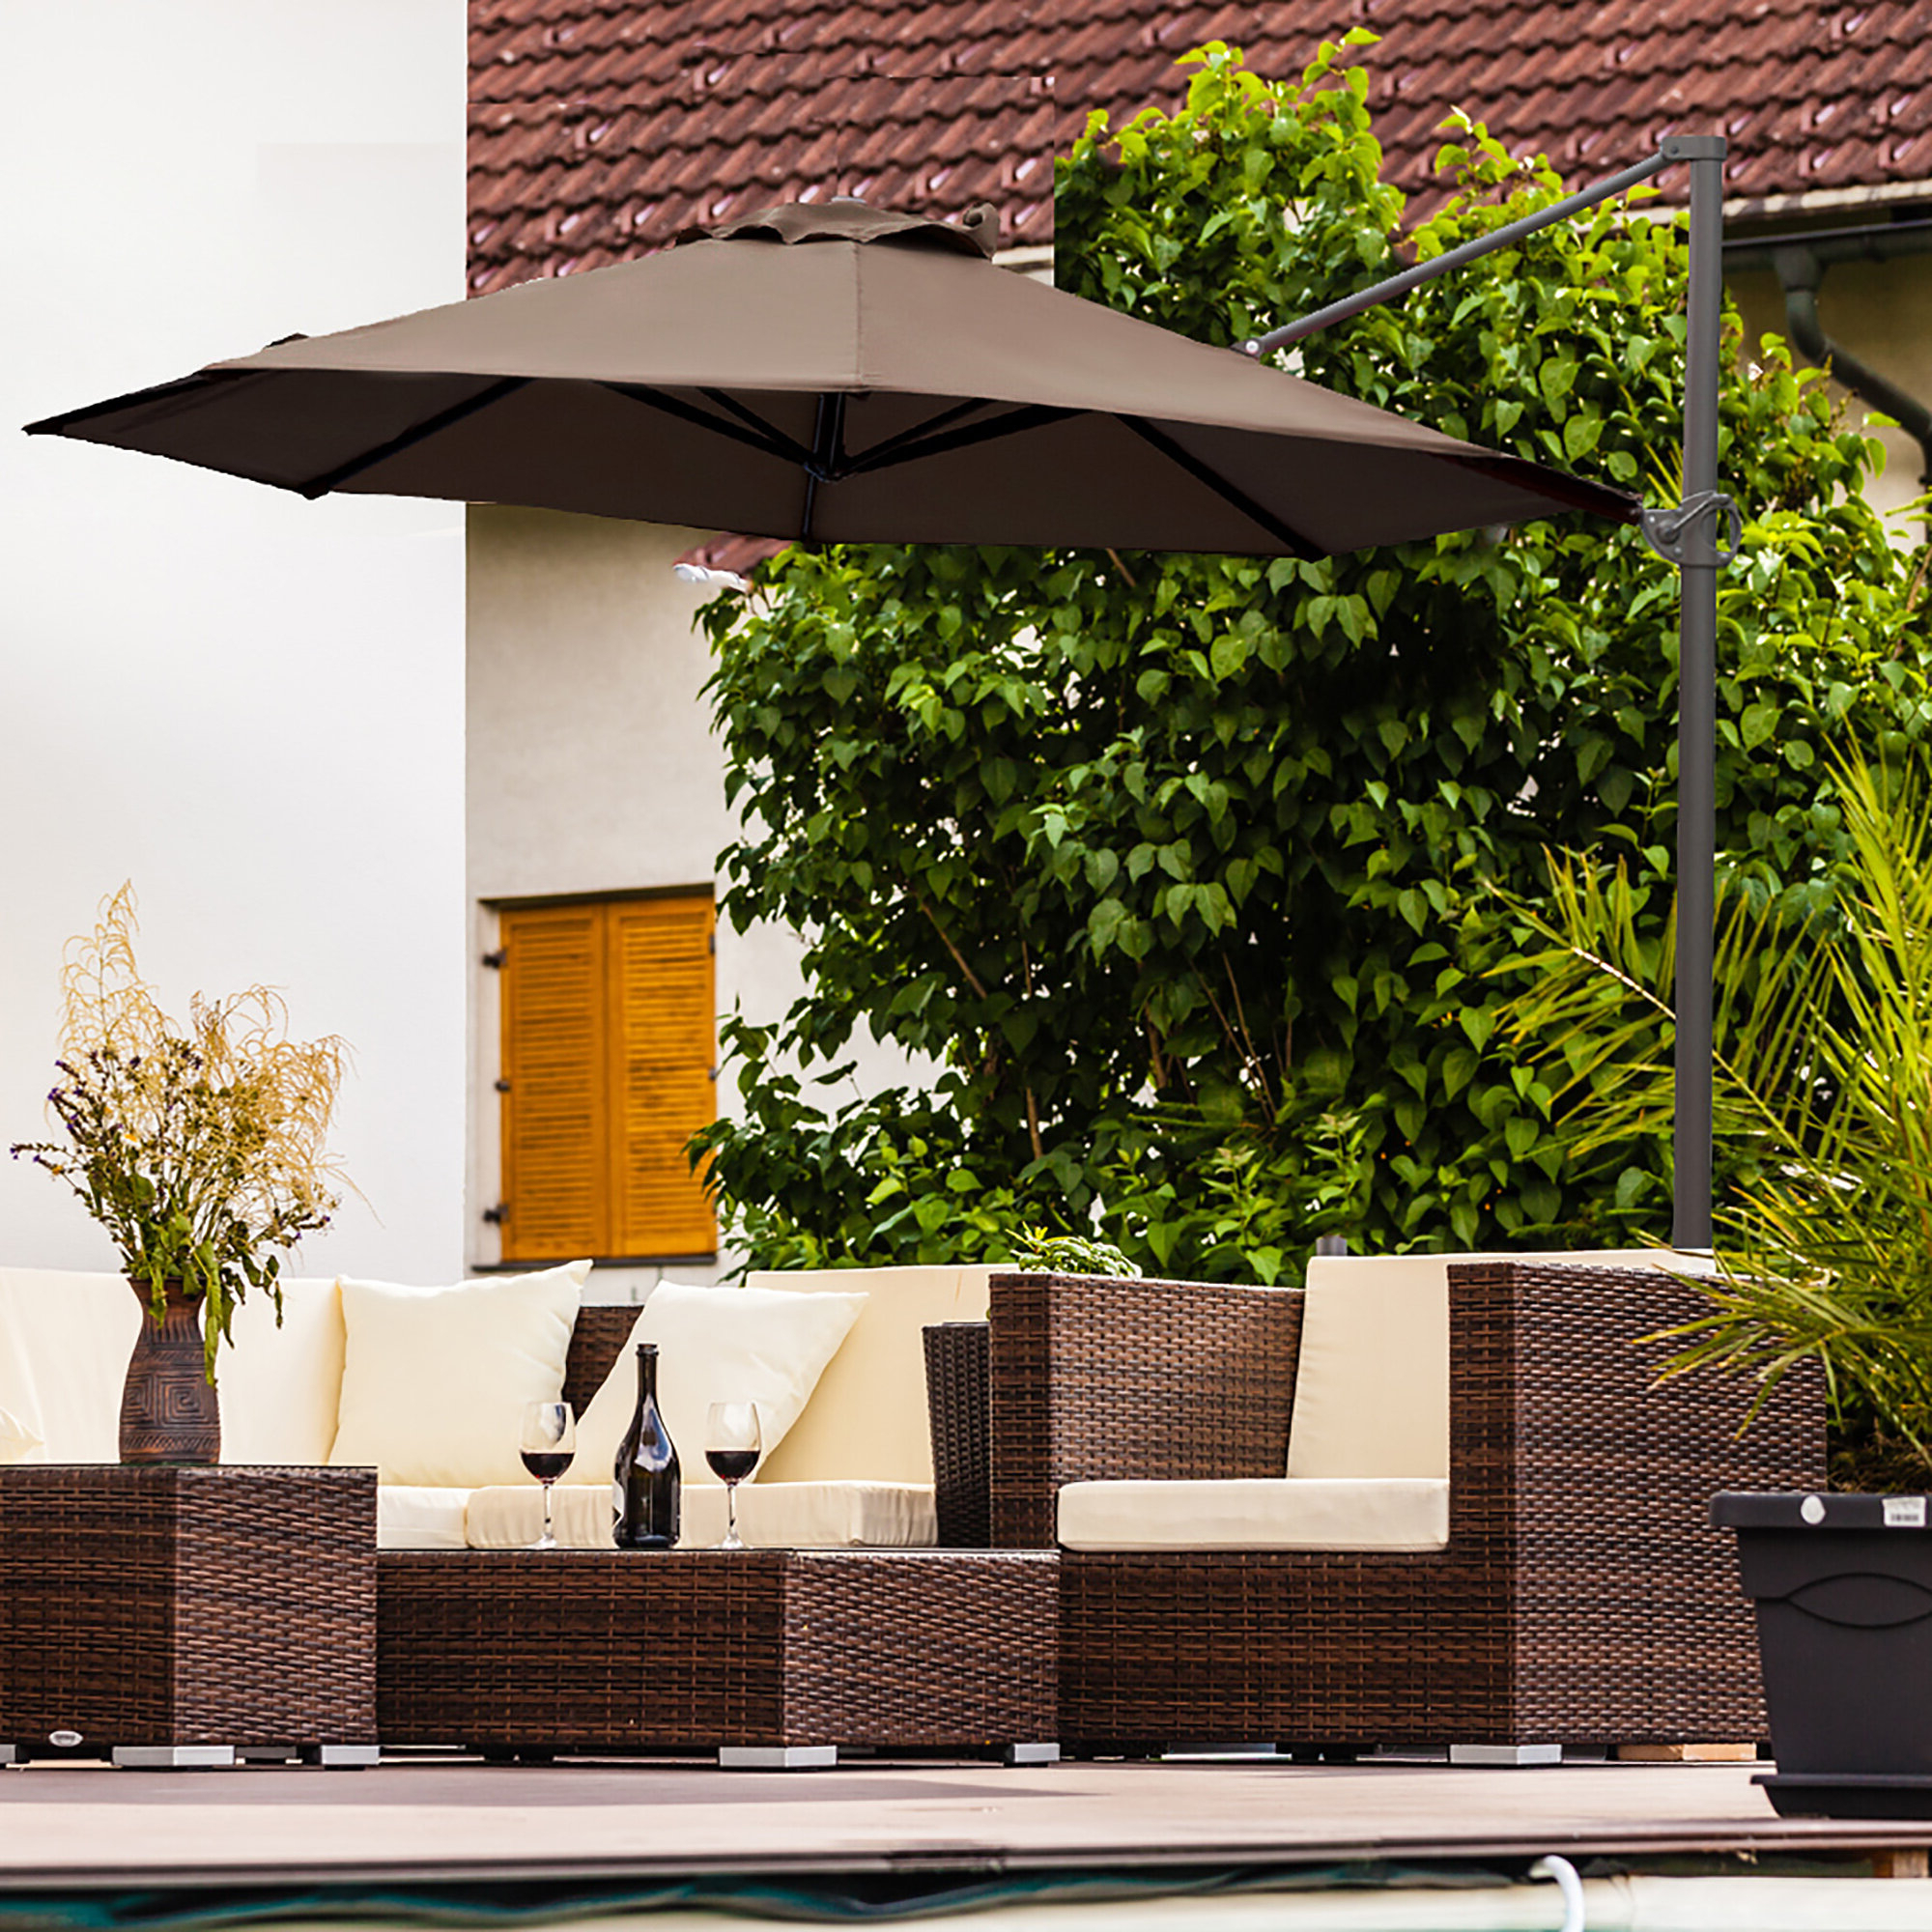 Kedzie Outdoor Cantilever Umbrellas Intended For Best And Newest Farnham Cantilever Umbrella (View 10 of 20)